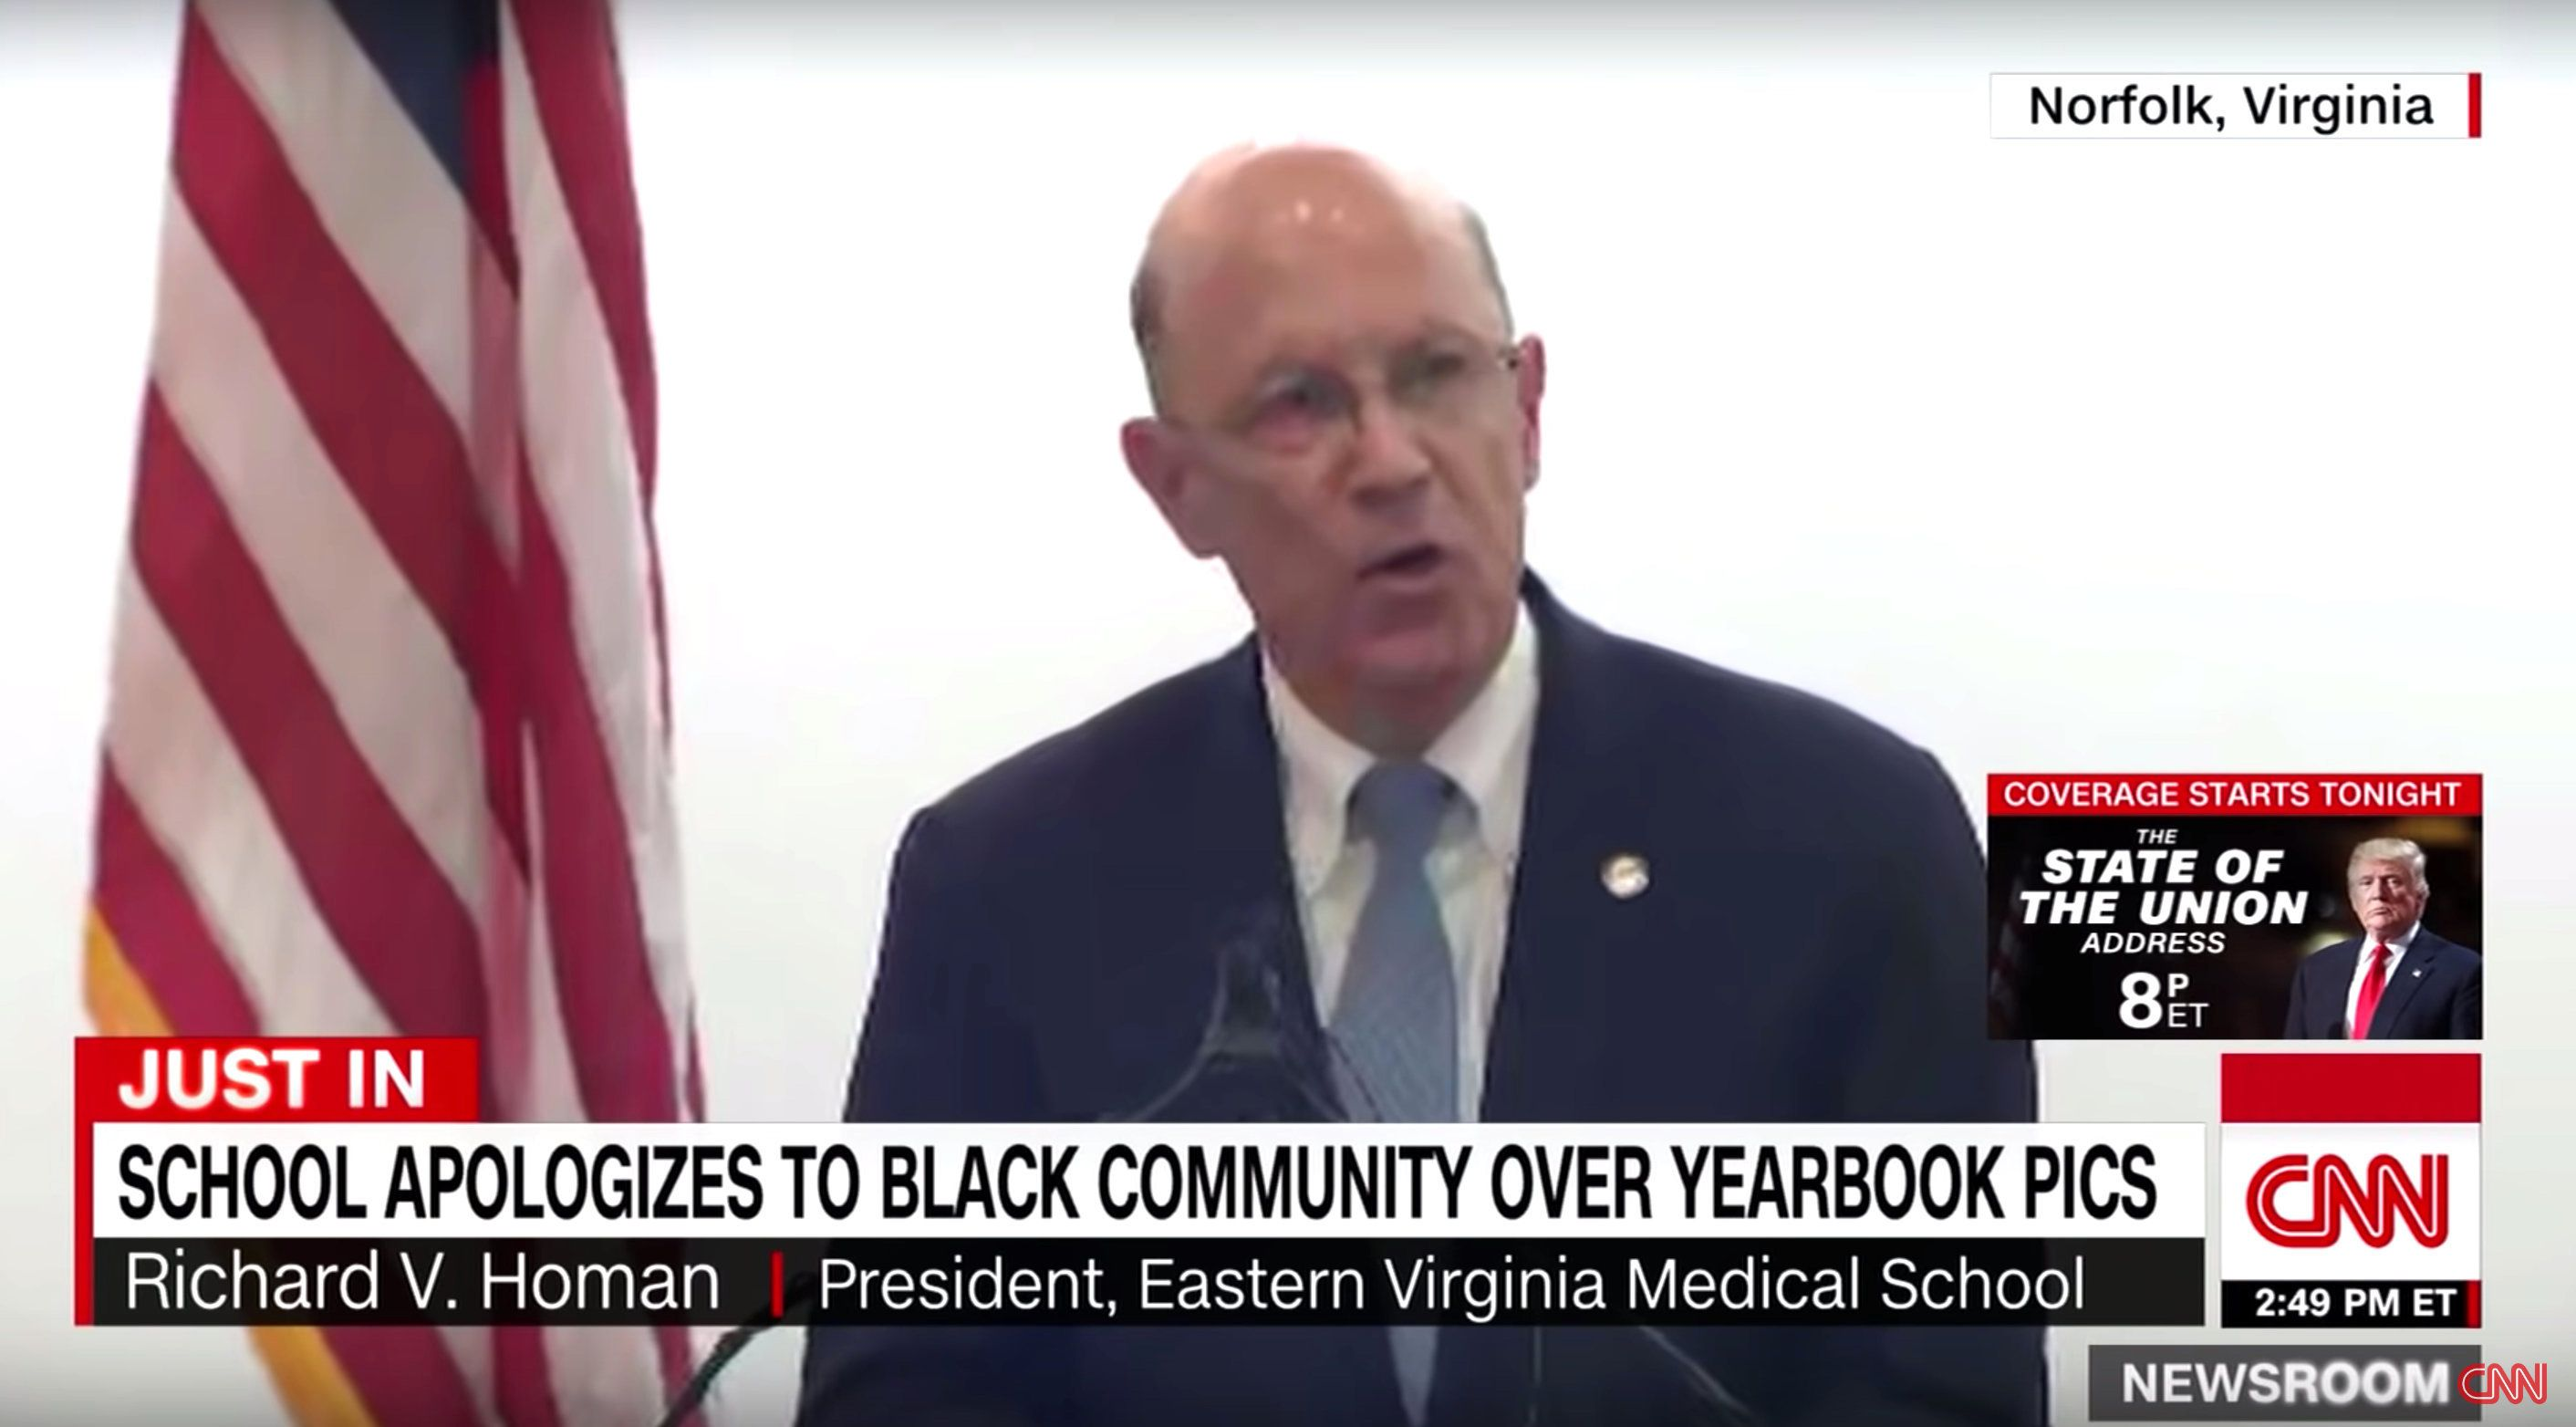 Eastern Virginia Medical School apologized Tuesday for its old racist yearbook photos after state Gov. Ralph Northam was thought to be in one of them showing a man in blackface next to another in Ku Klux Klan attire.